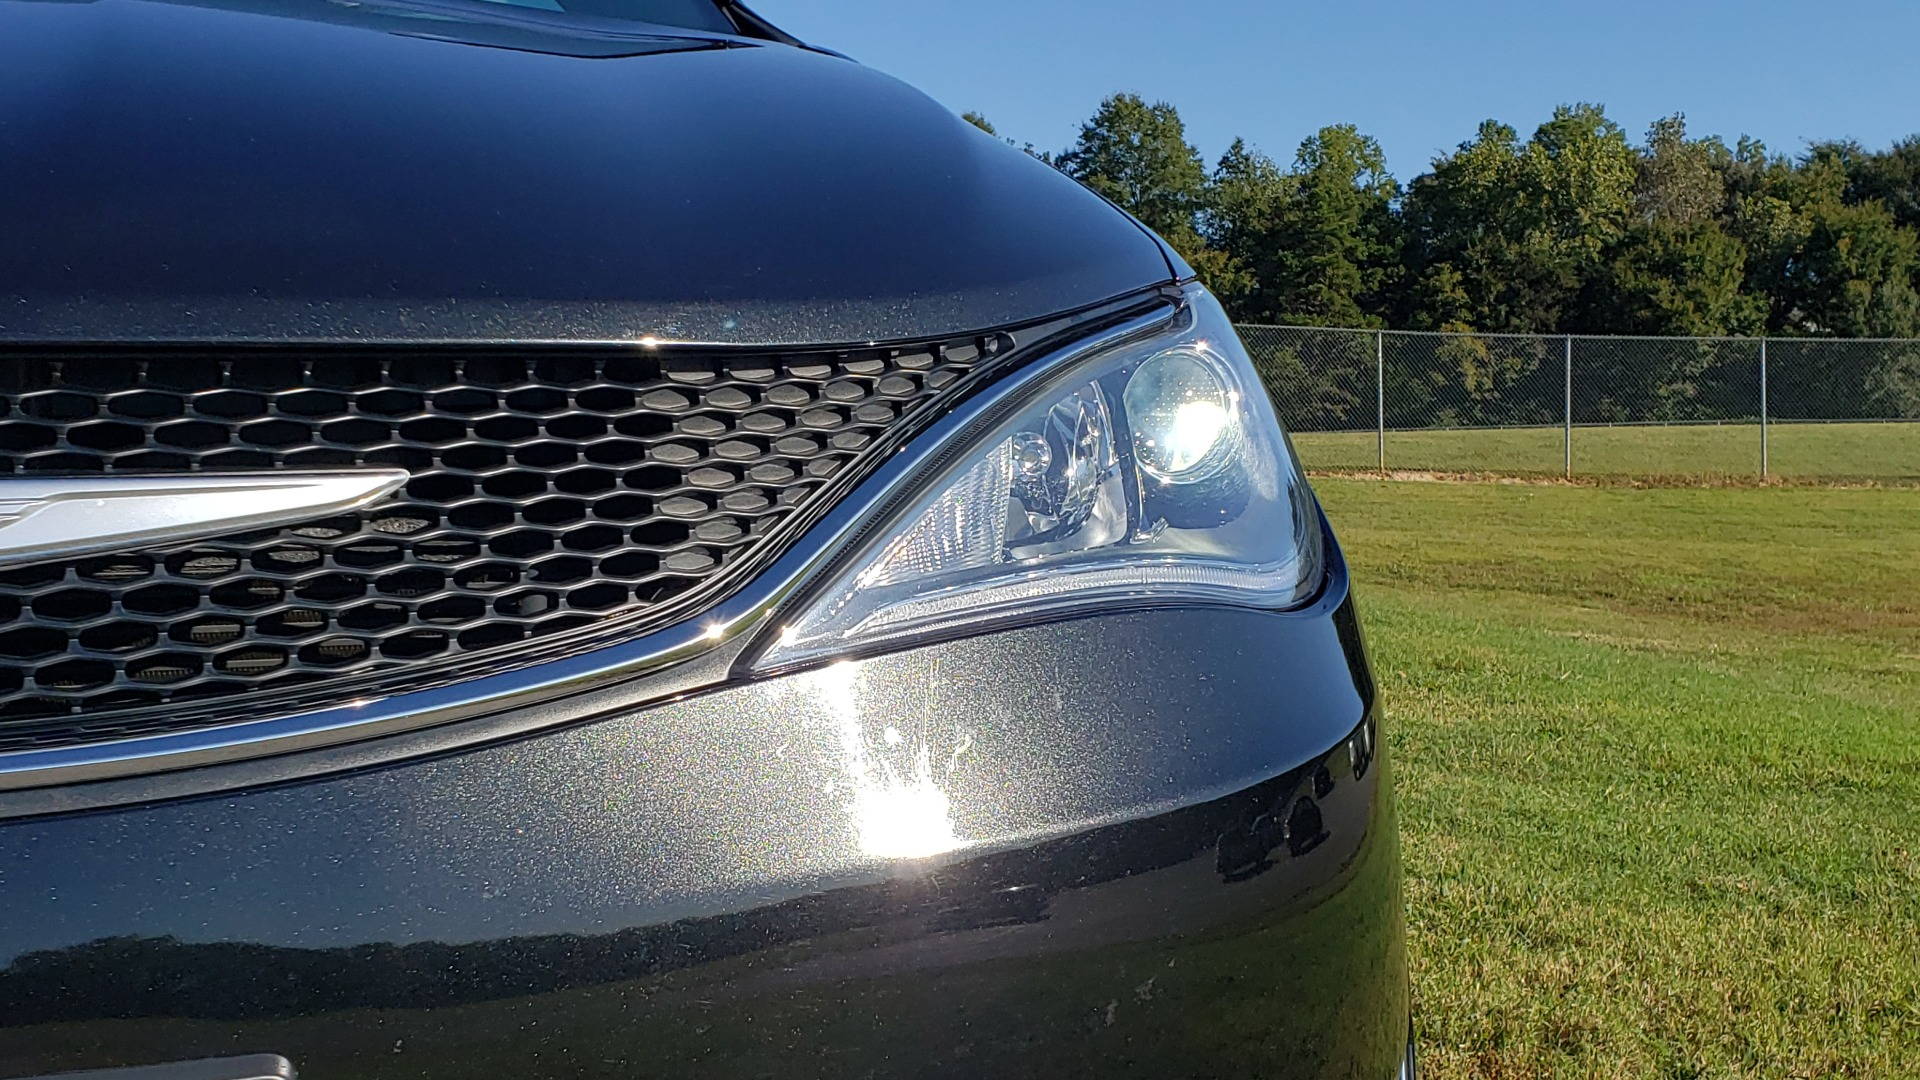 Used 2018 Chrysler PACIFICA LIMITED / 3.6L V6 / NAV / PANO-ROOF / 3-ROWS / REARVIEW for sale Sold at Formula Imports in Charlotte NC 28227 14